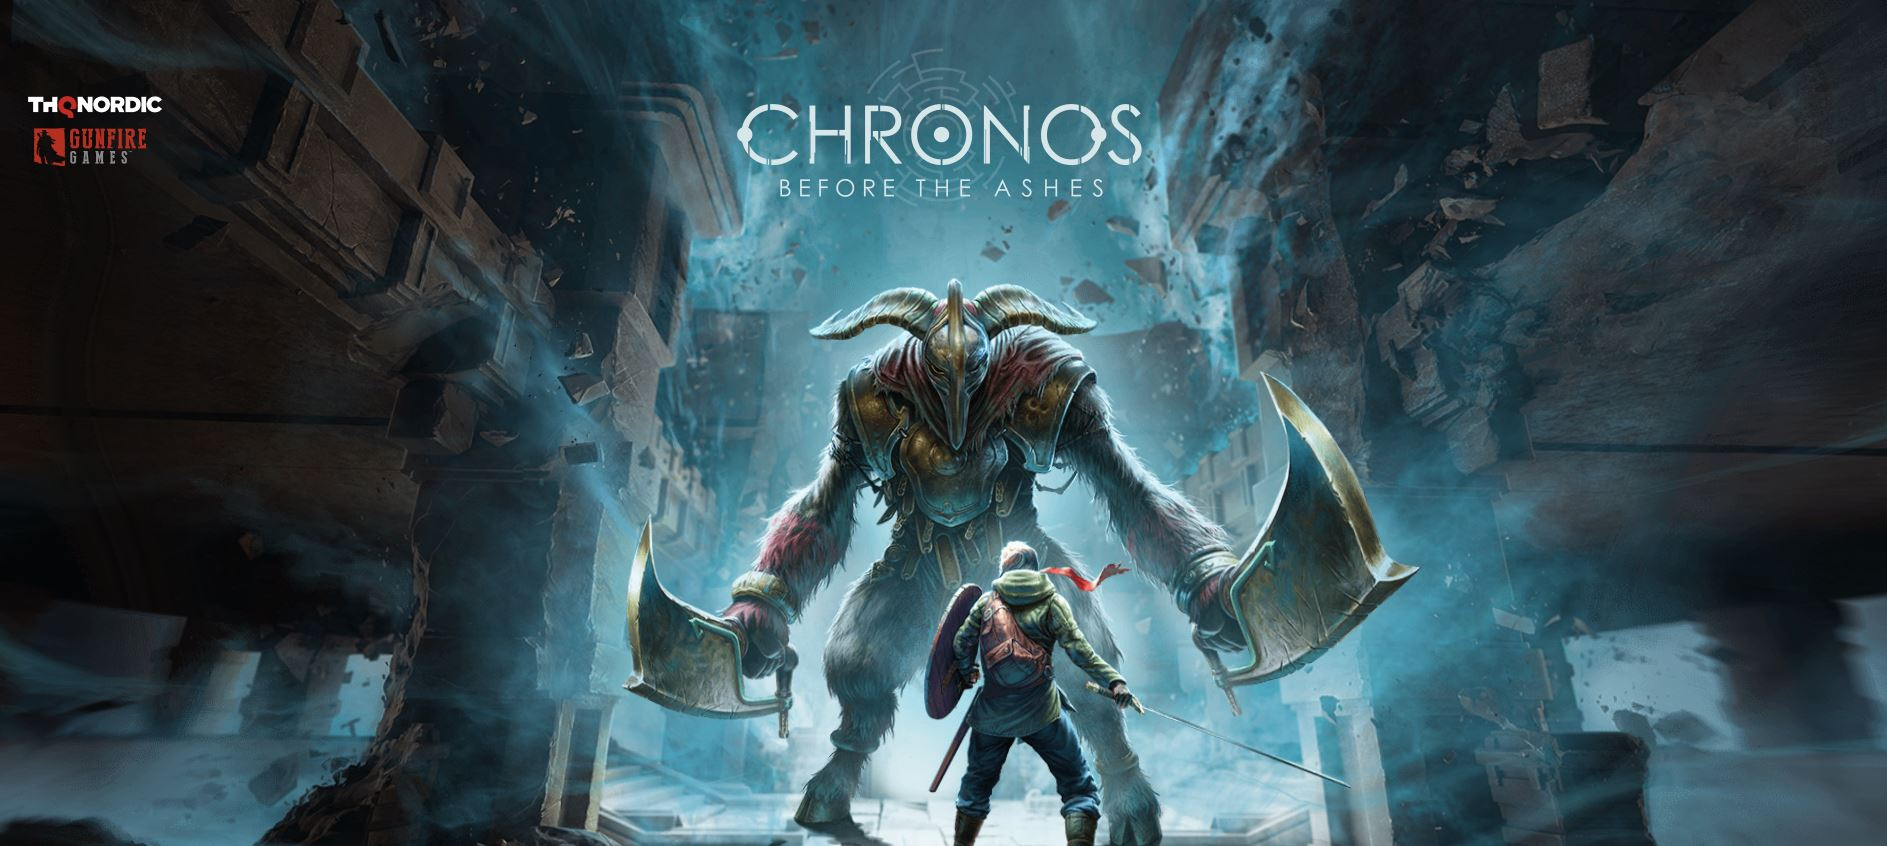 #Chronos: Before the Ashes